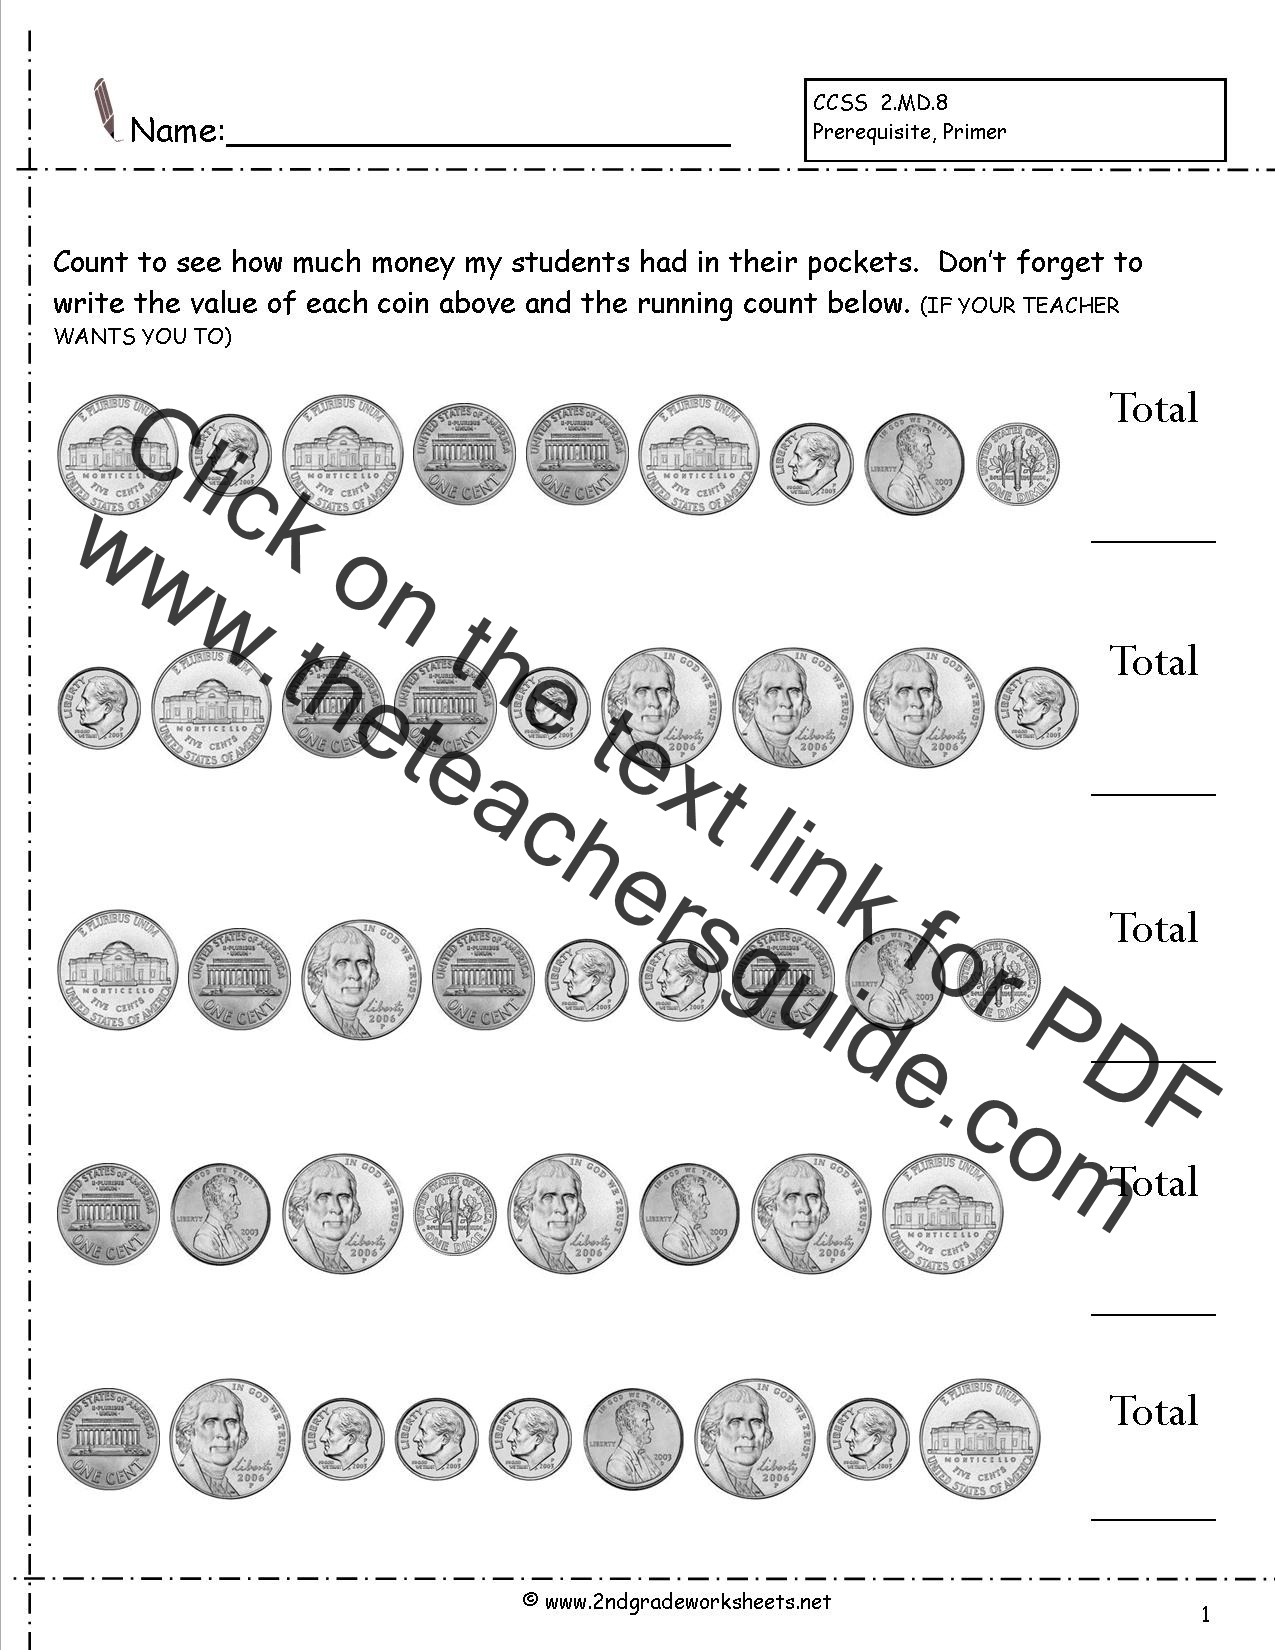 Worksheets Coin Value Worksheet counting coins and money worksheets printouts worksheet